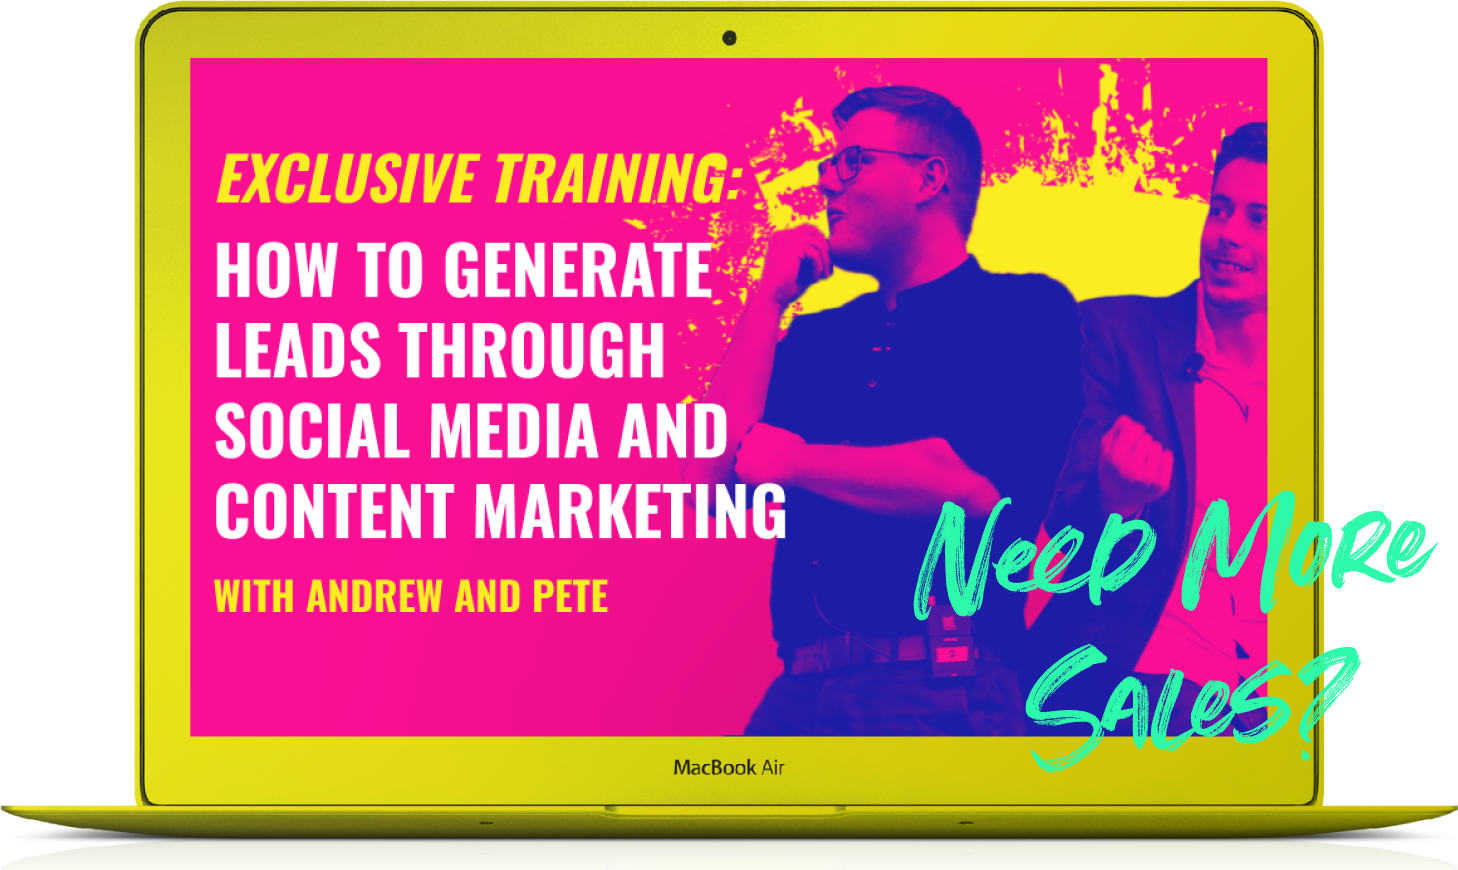 How-to-Generate-Leads-Through-Social-Media-and-Content-Marketing